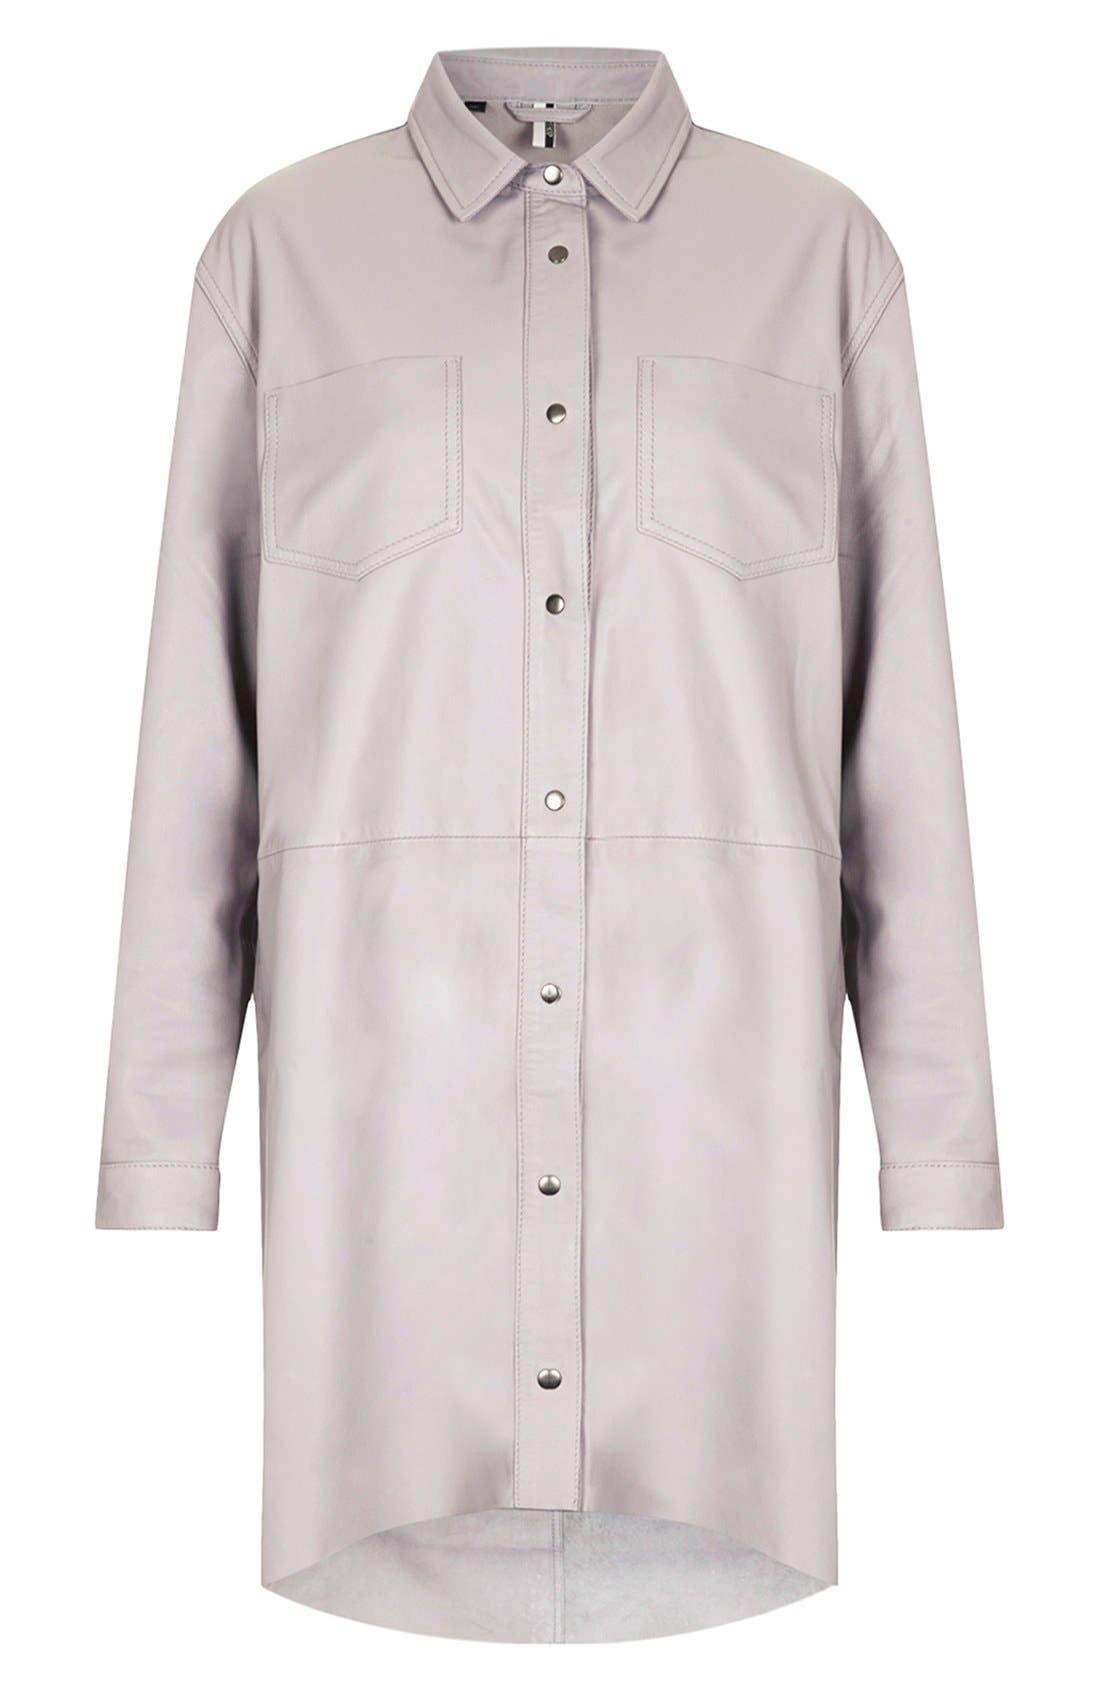 Alternate Image 1 Selected - Topshop 'The Collection Starring Kate Bosworth' Leather Shirtdress